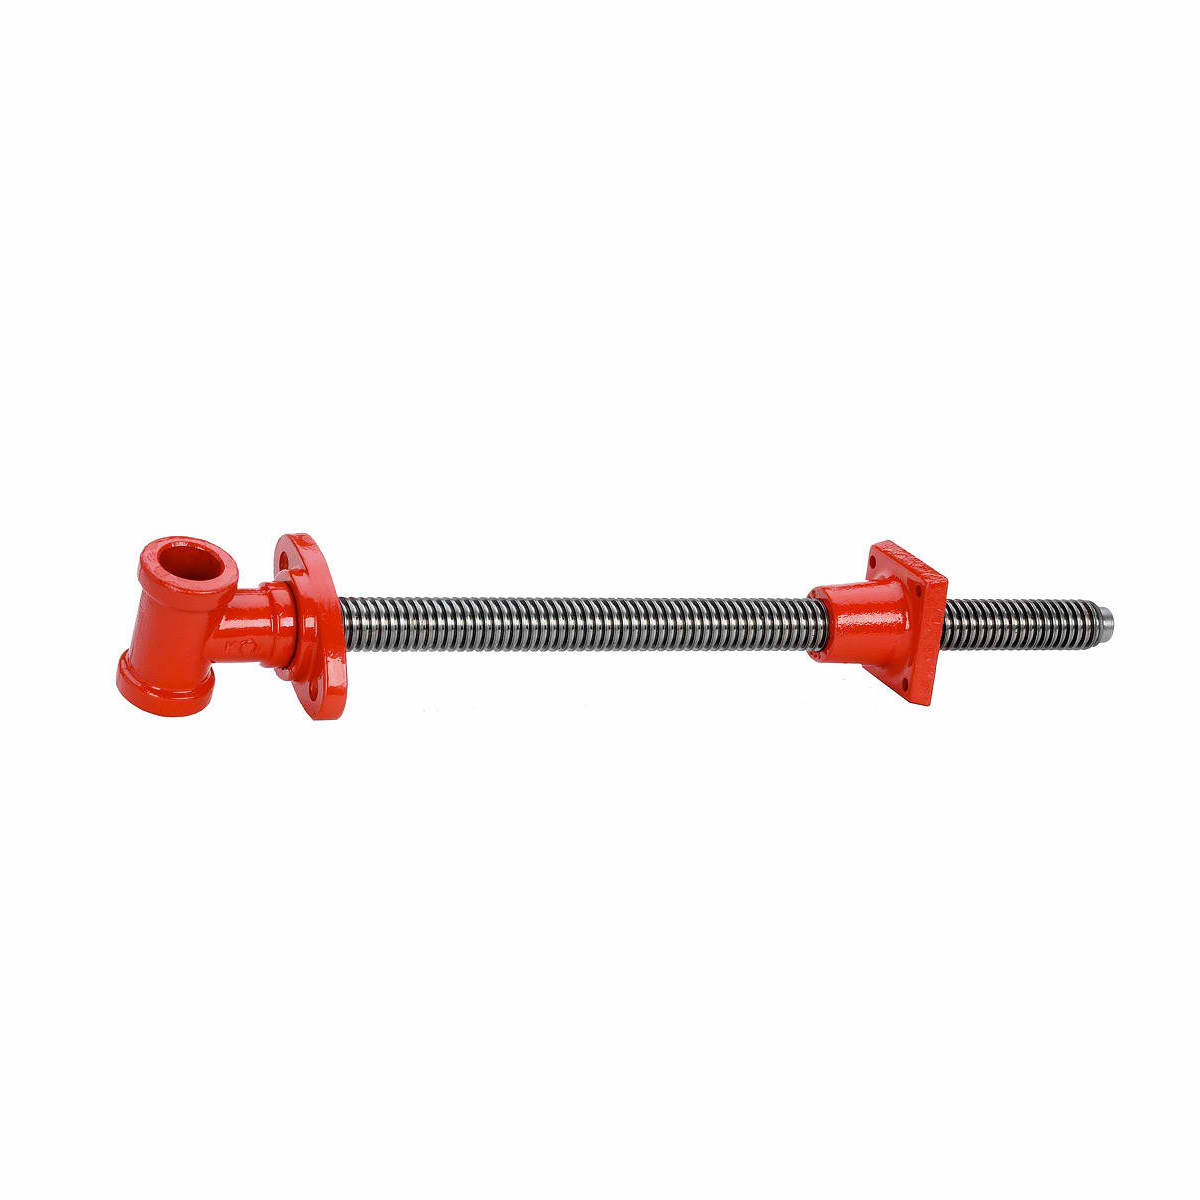 Large bench screw